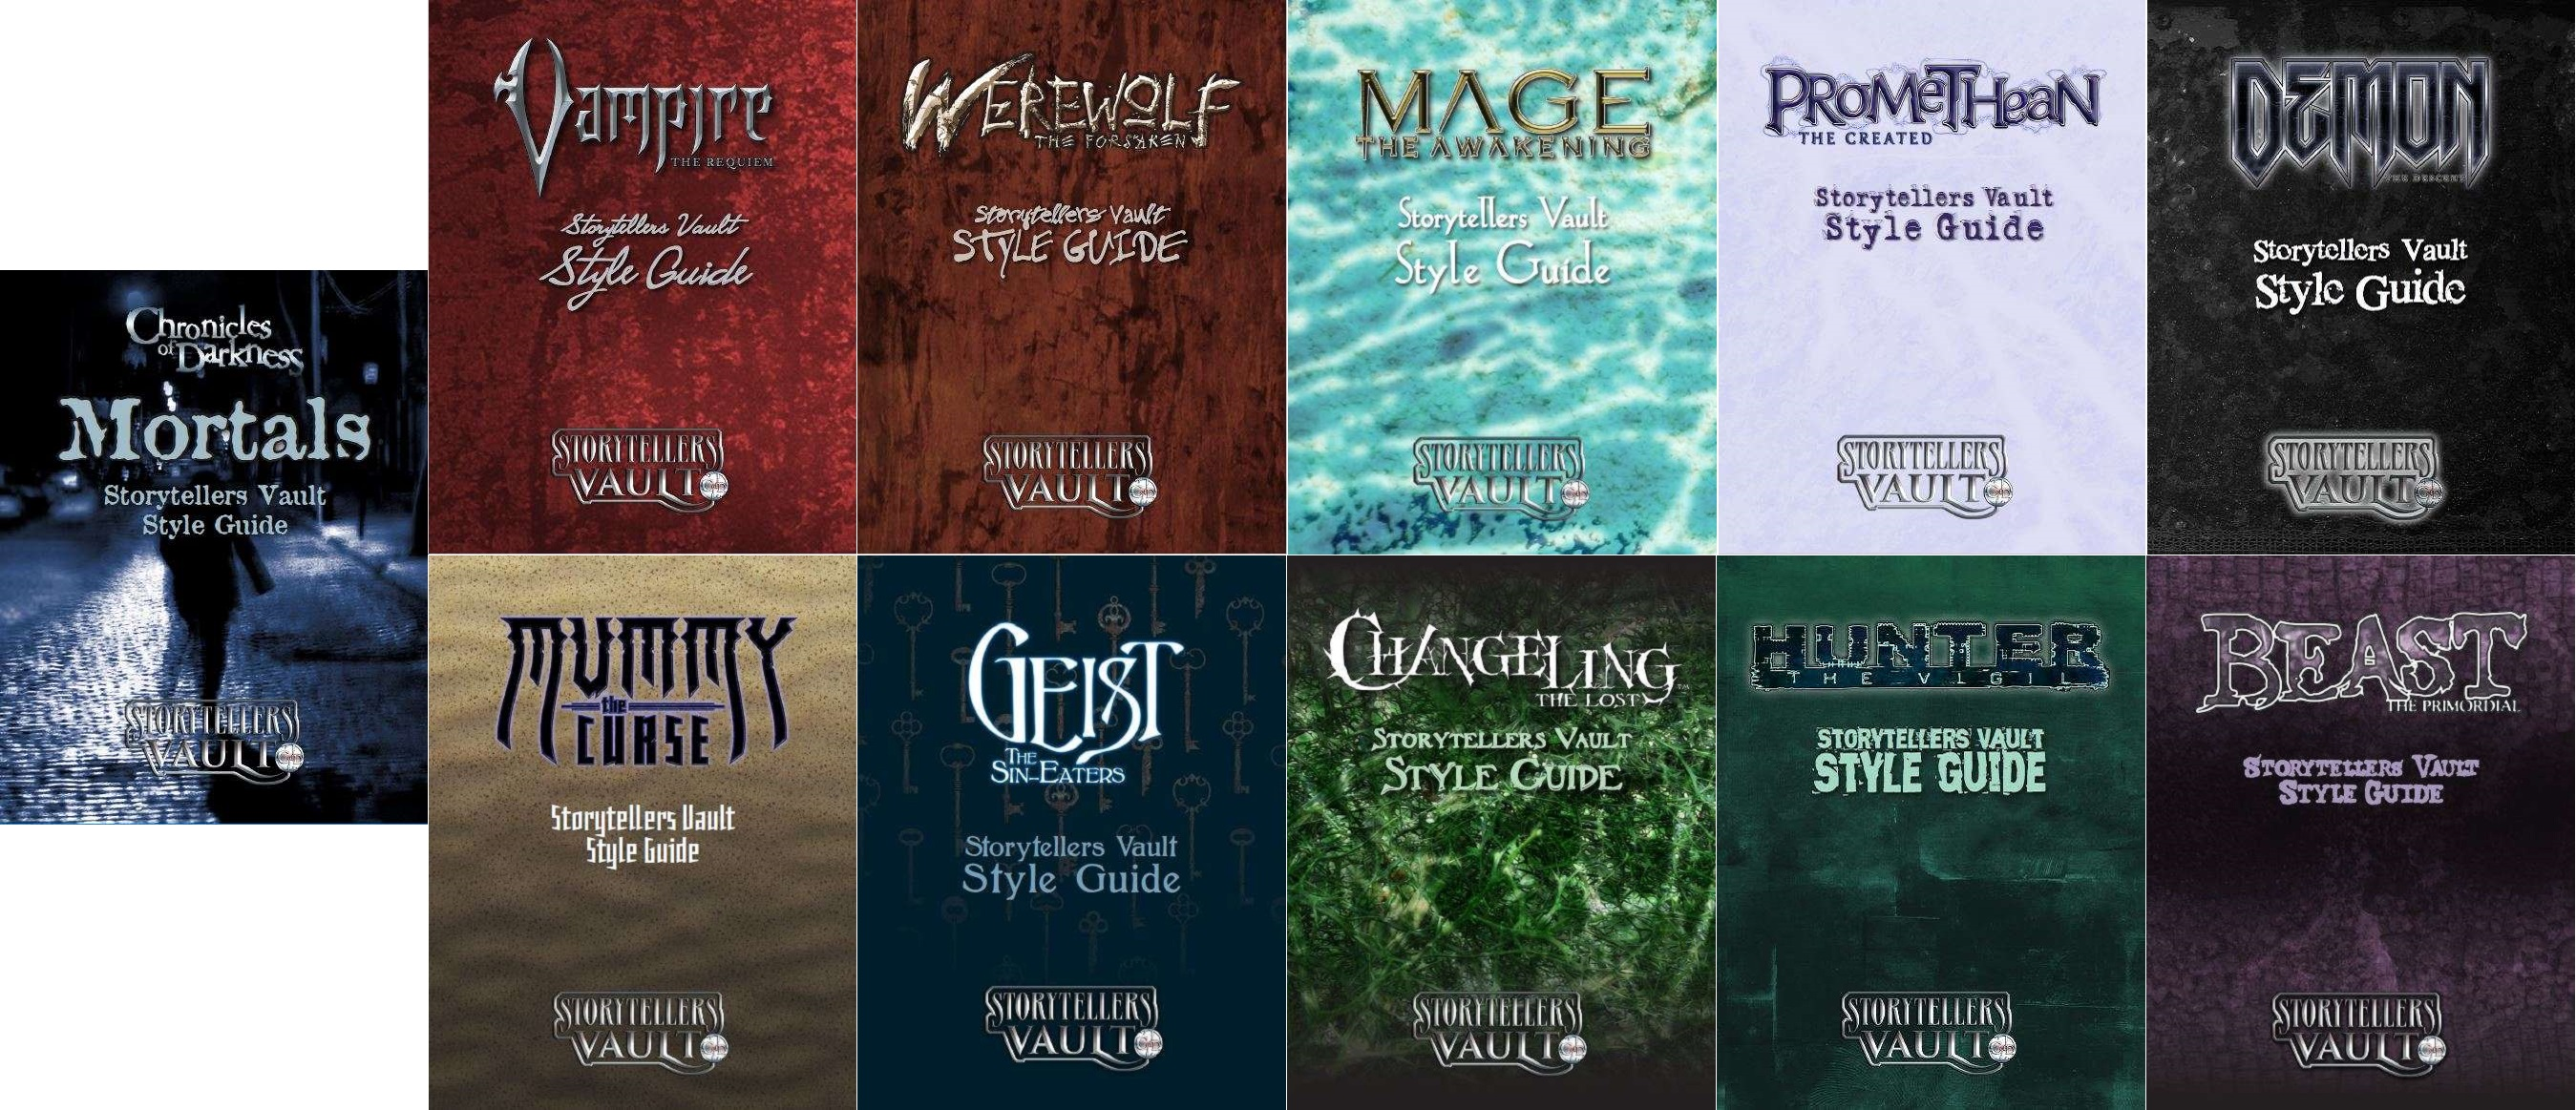 Storyteller Vault Chronicle of Darkness - Collage der CofD Style Guides